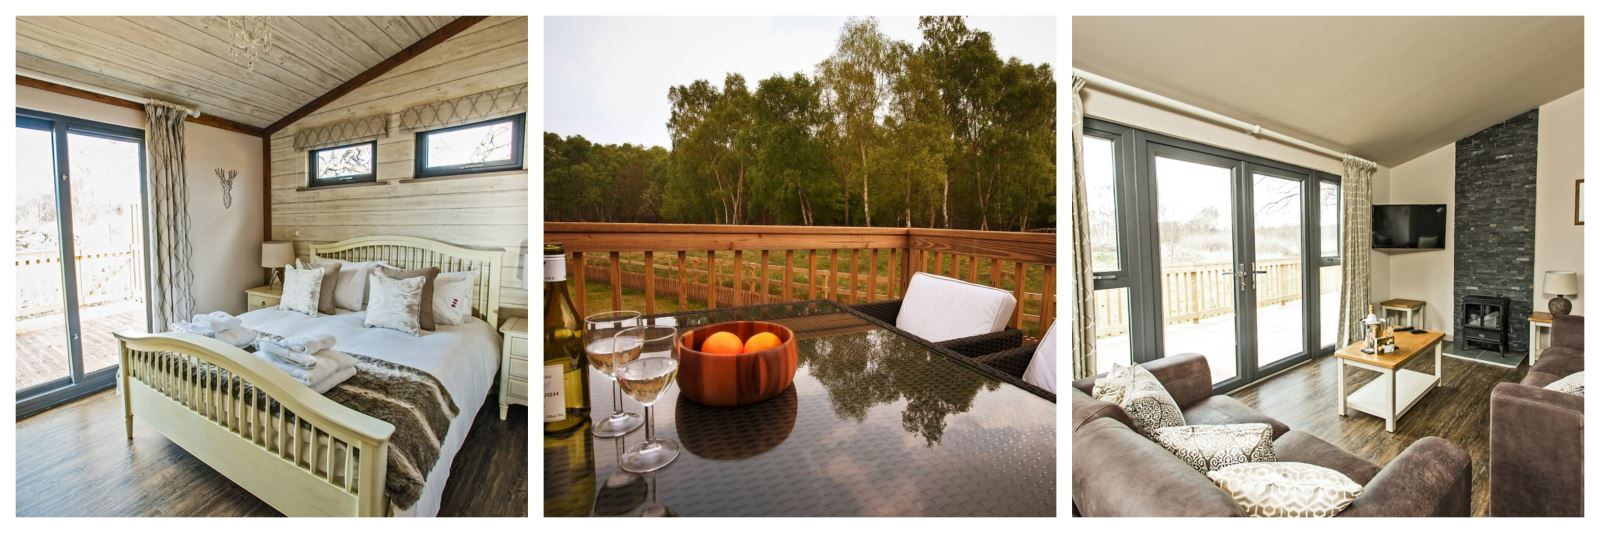 The Sherwood Hideaway - Visit Nottinghamshire